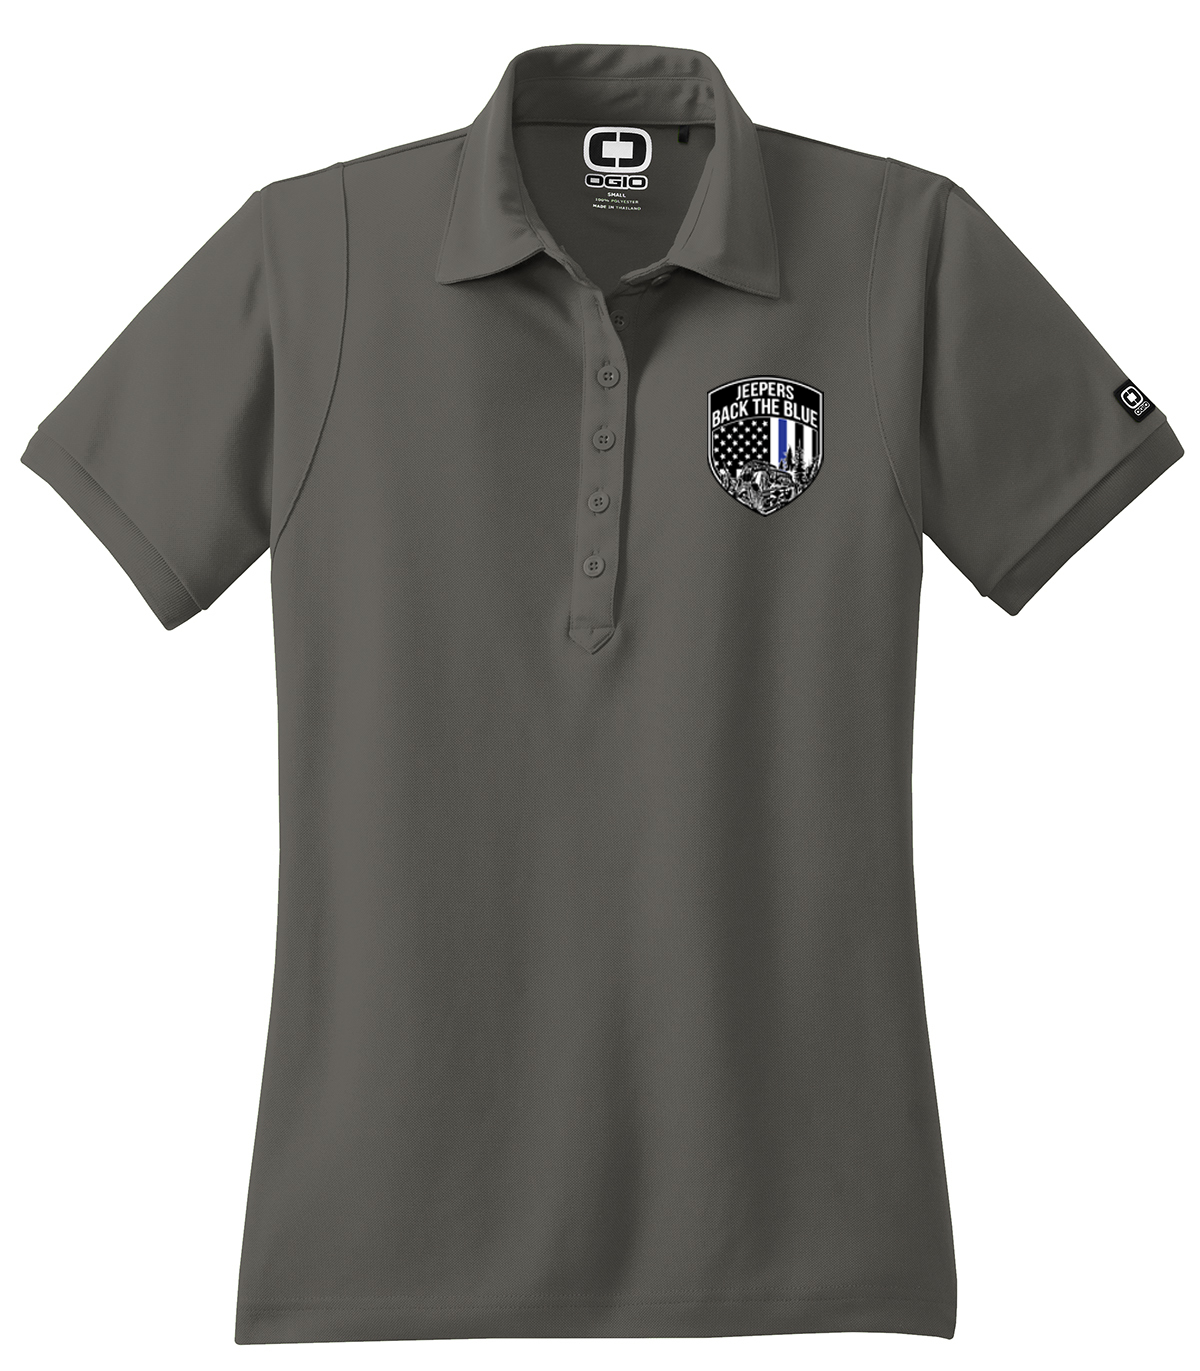 Jeepers Back the Blue Womens Polo